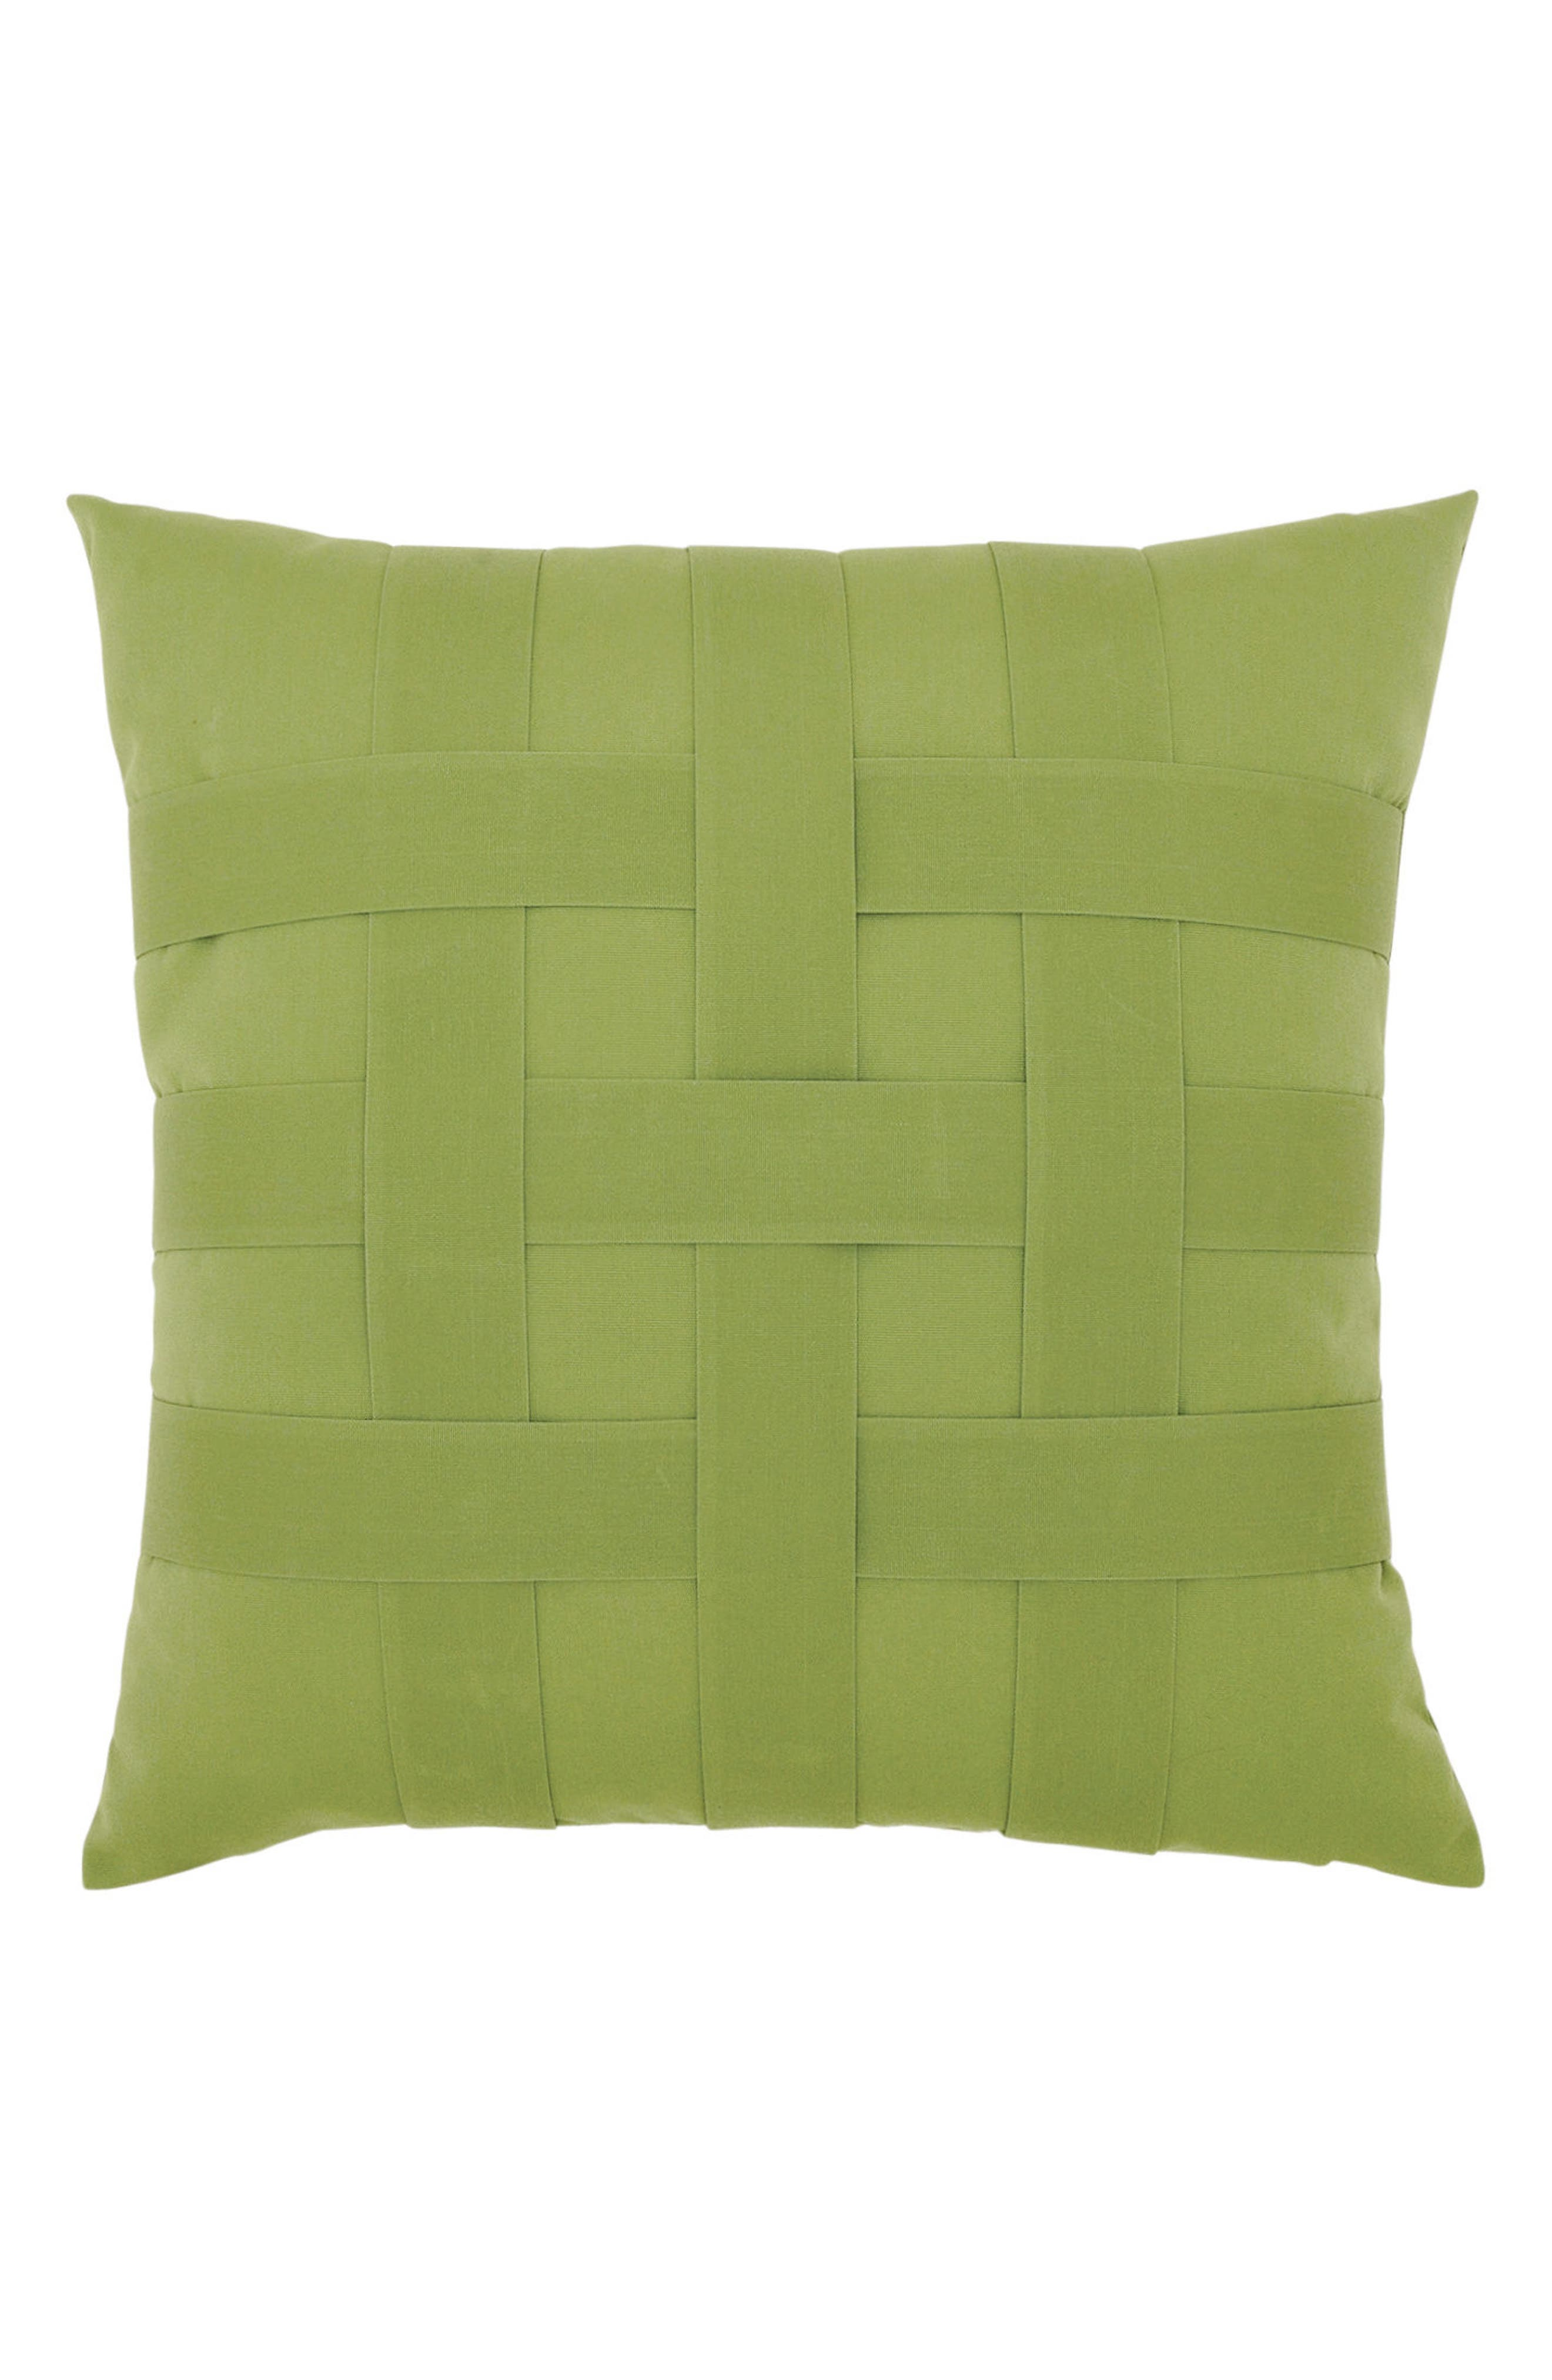 ELAINE SMITH Basket Weave Indoor/Outdoor Accent Pillow, Main, color, 300